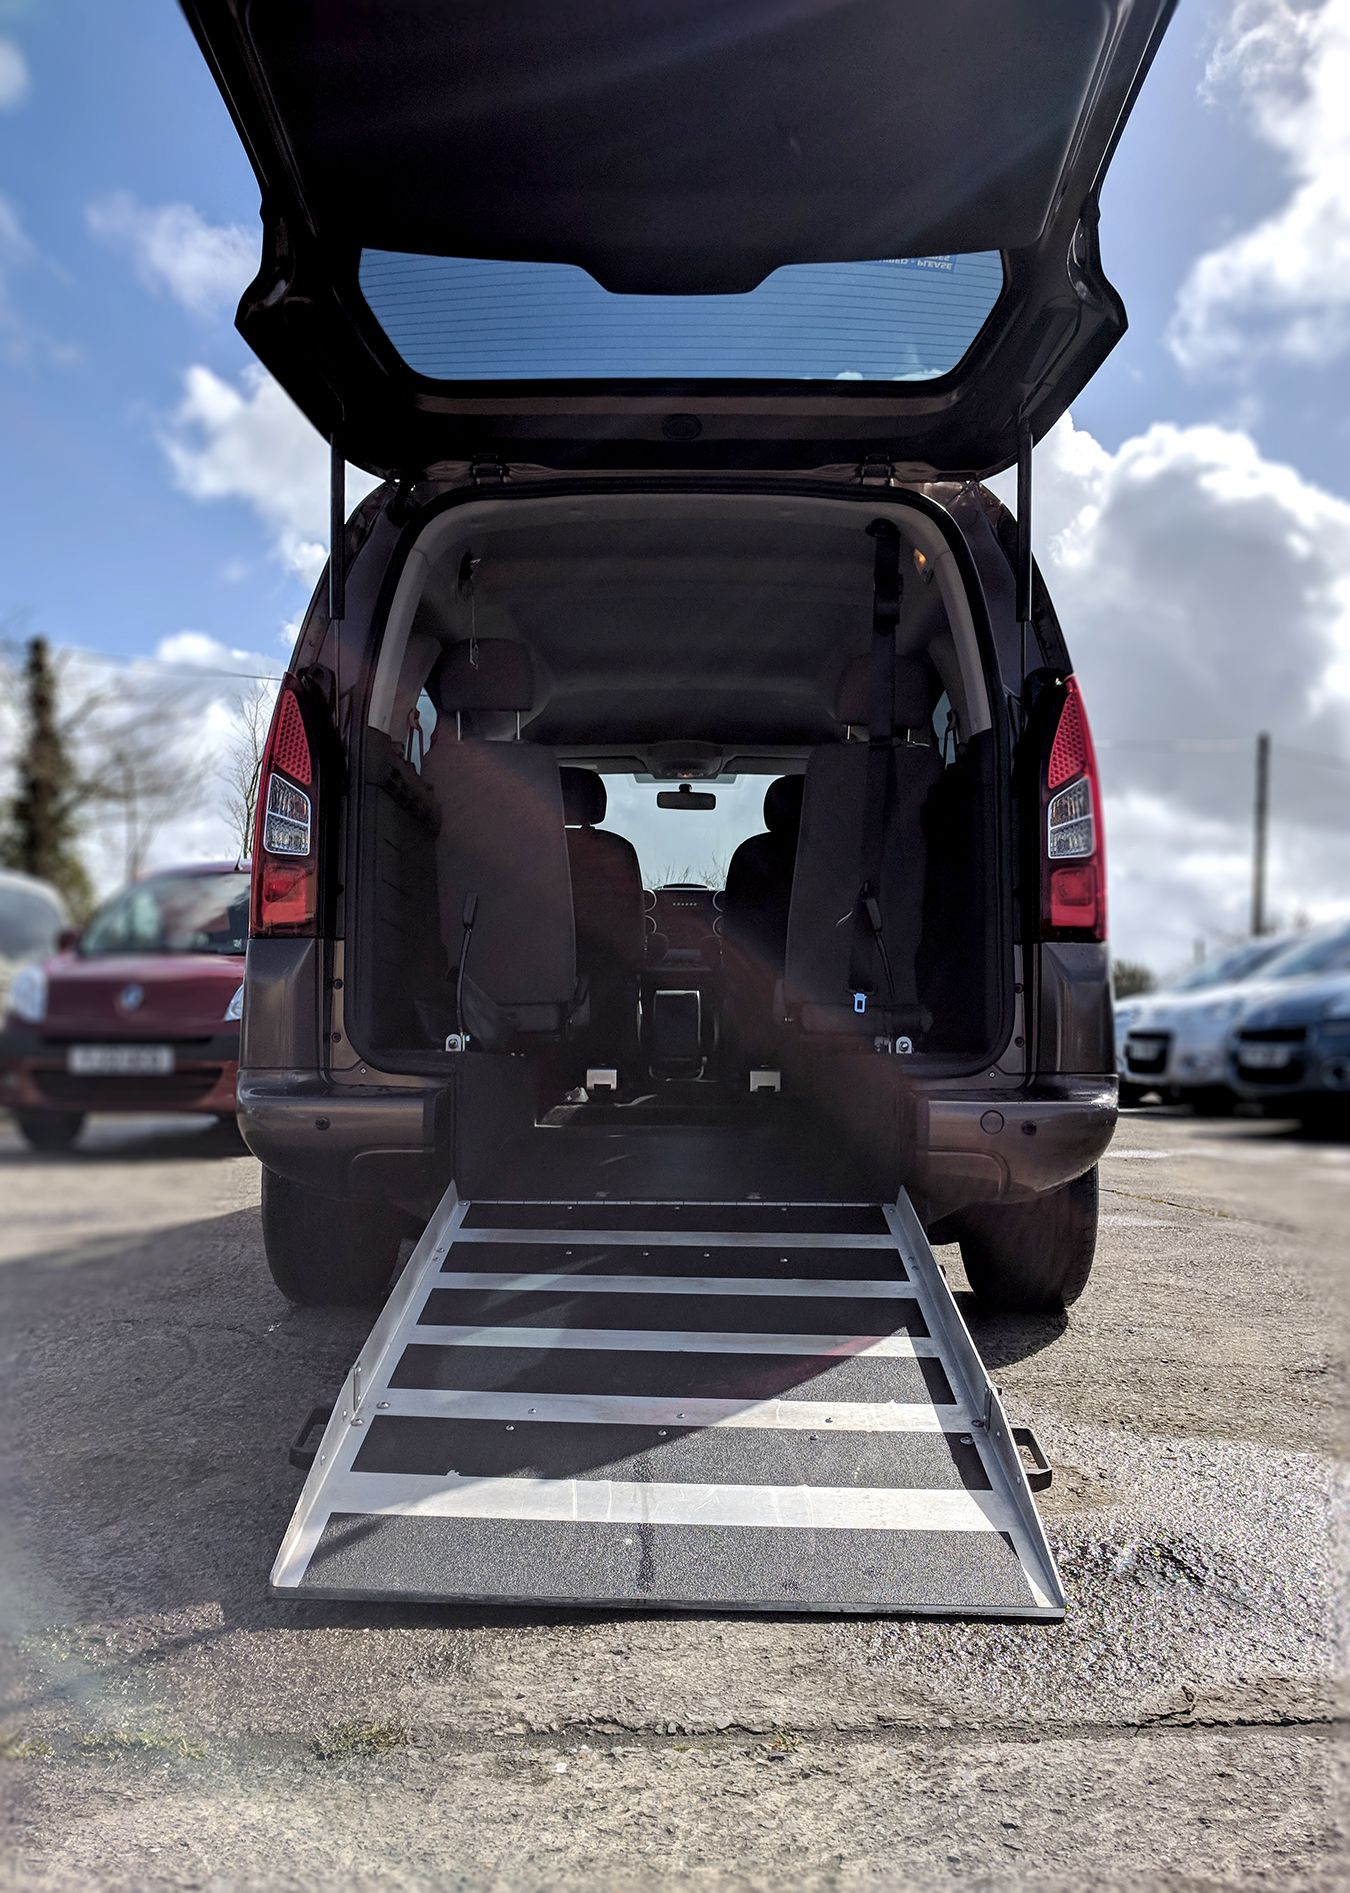 Pin by John Lewis on Wheelchair Accessible Vans